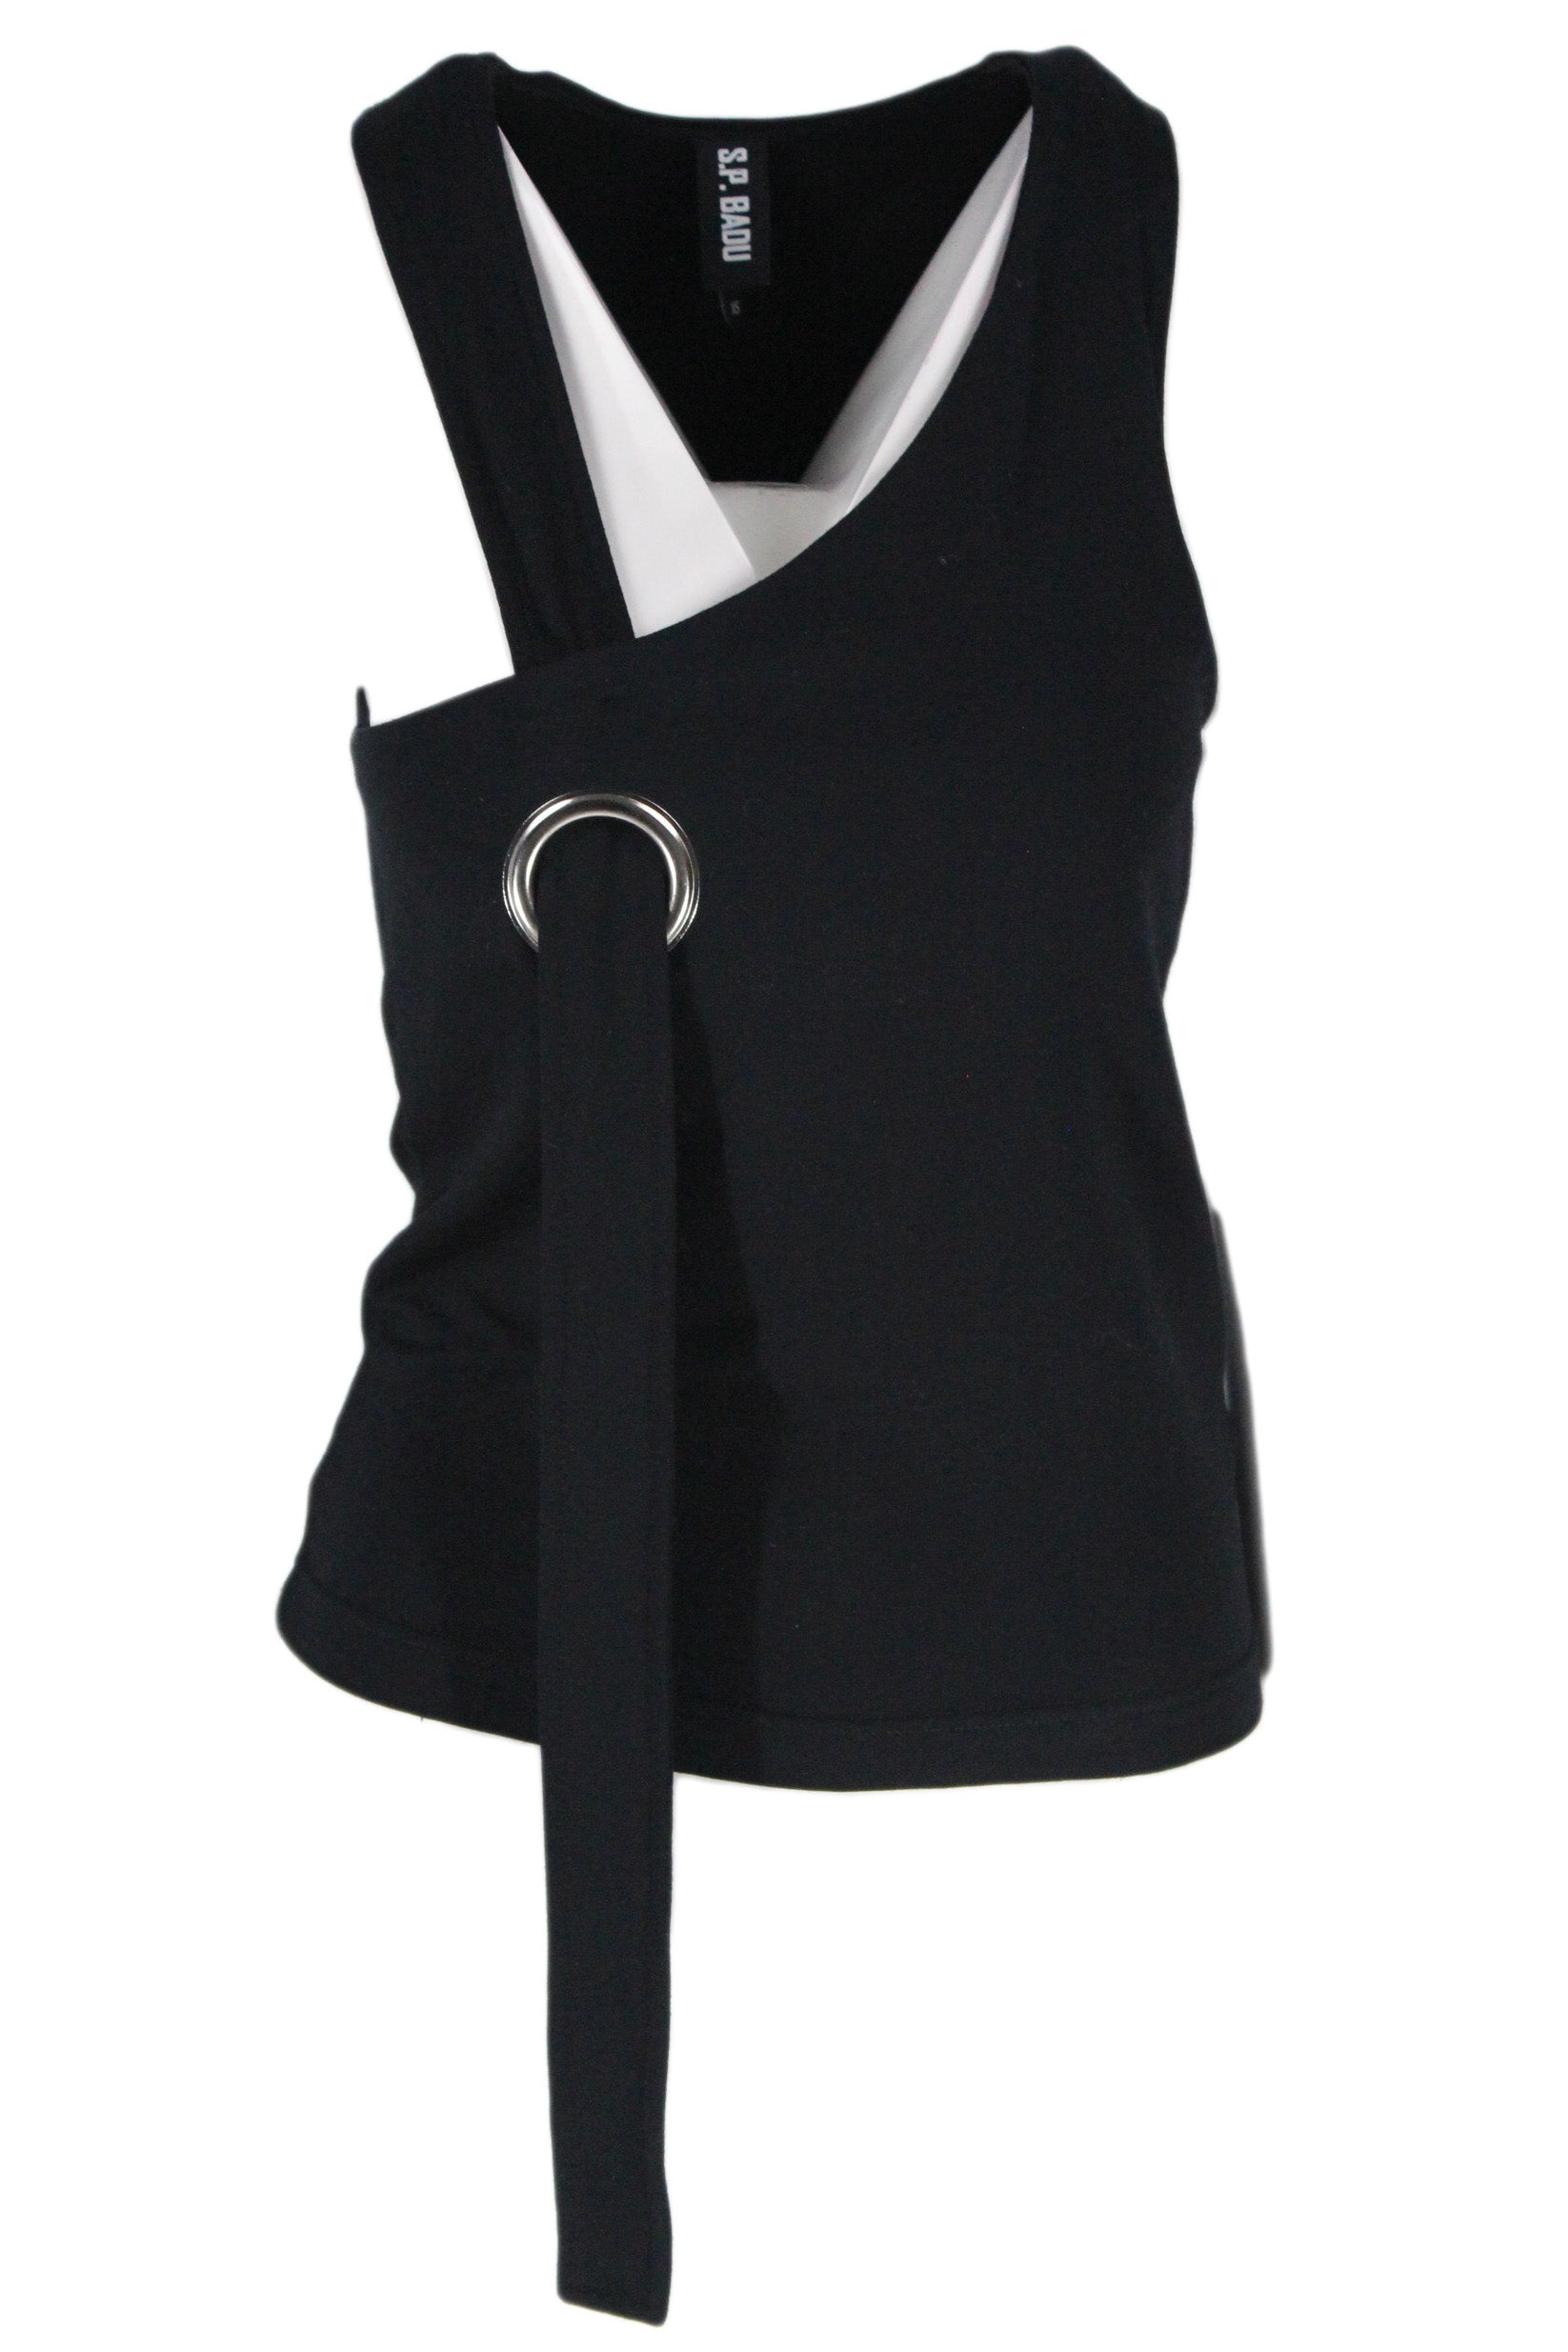 s.p. badu black sleeve-less top. features a metal loop at the right chest, and a right sash strap.